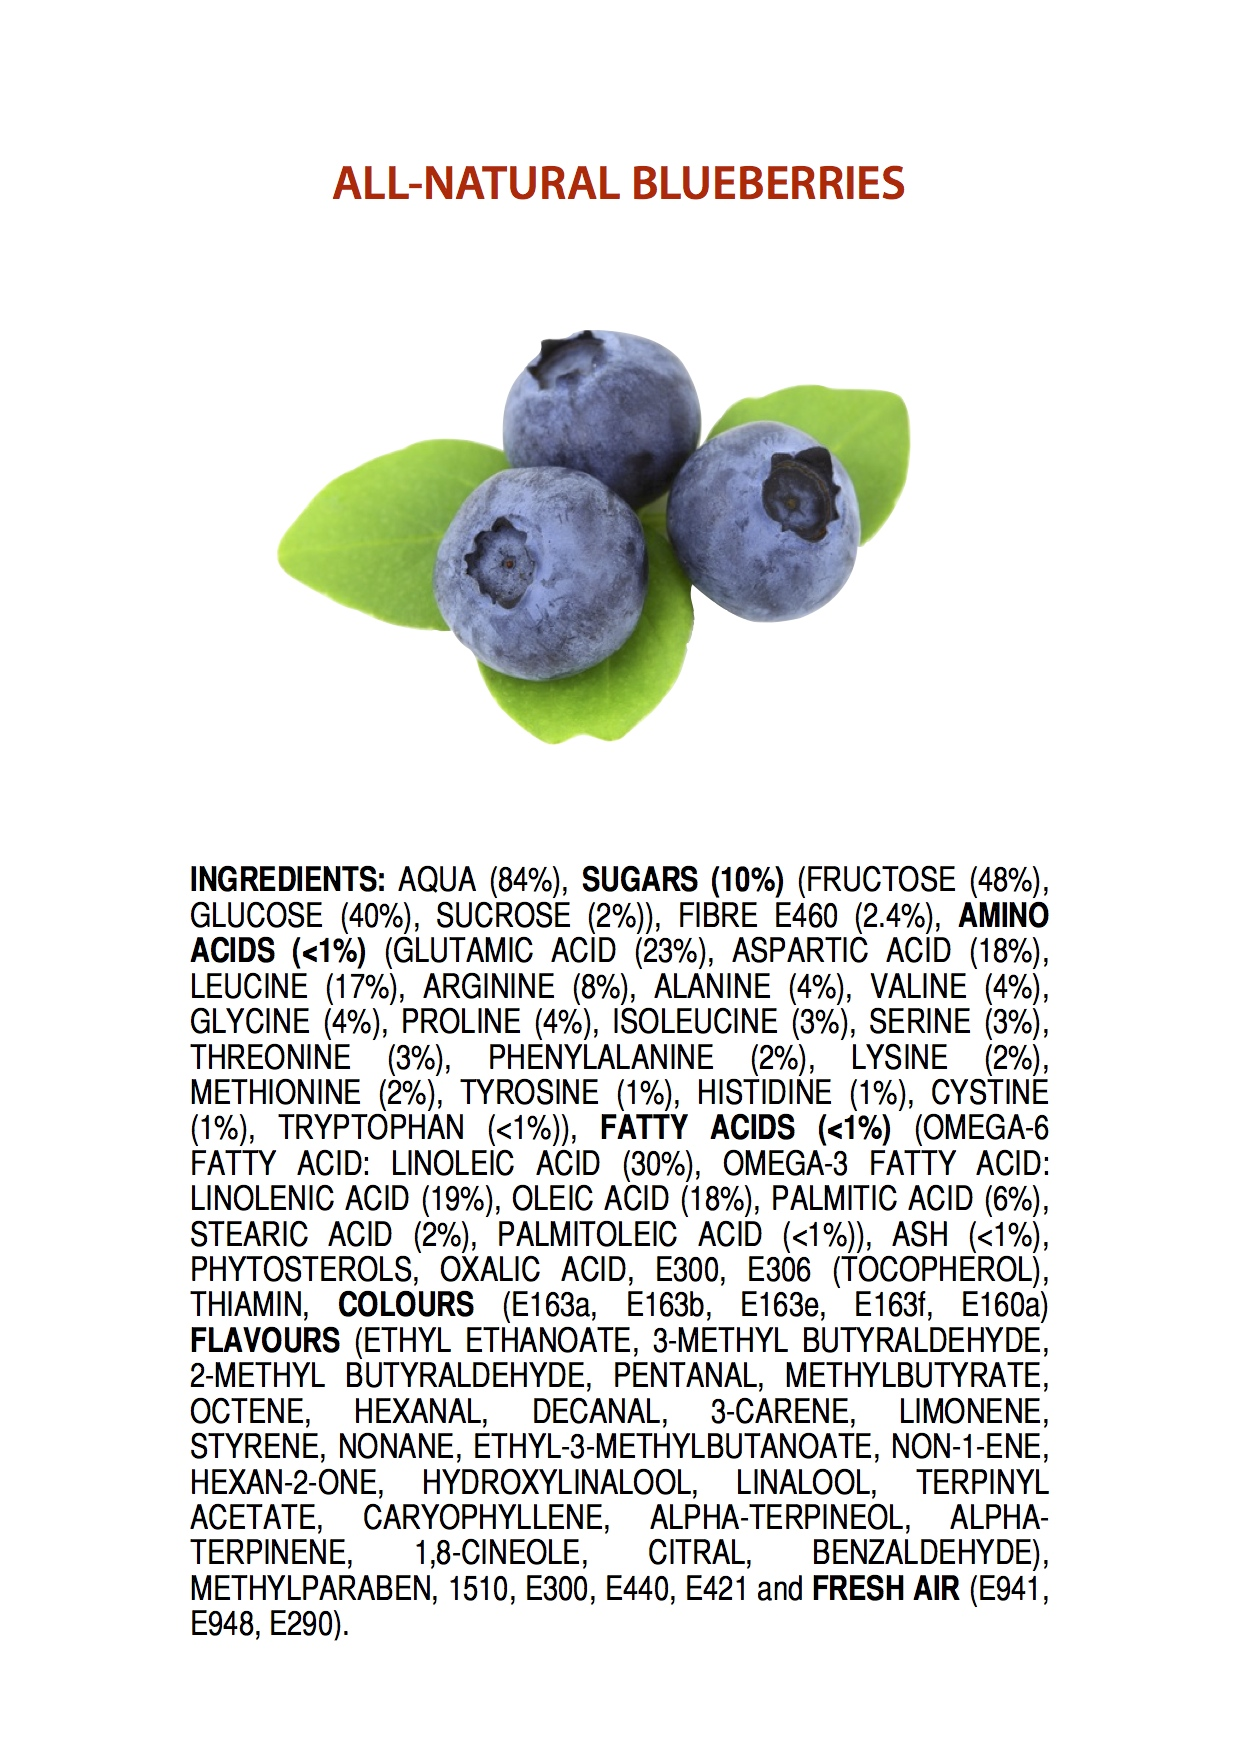 Ingredients of All-Natural Blueberries | James Kennedy